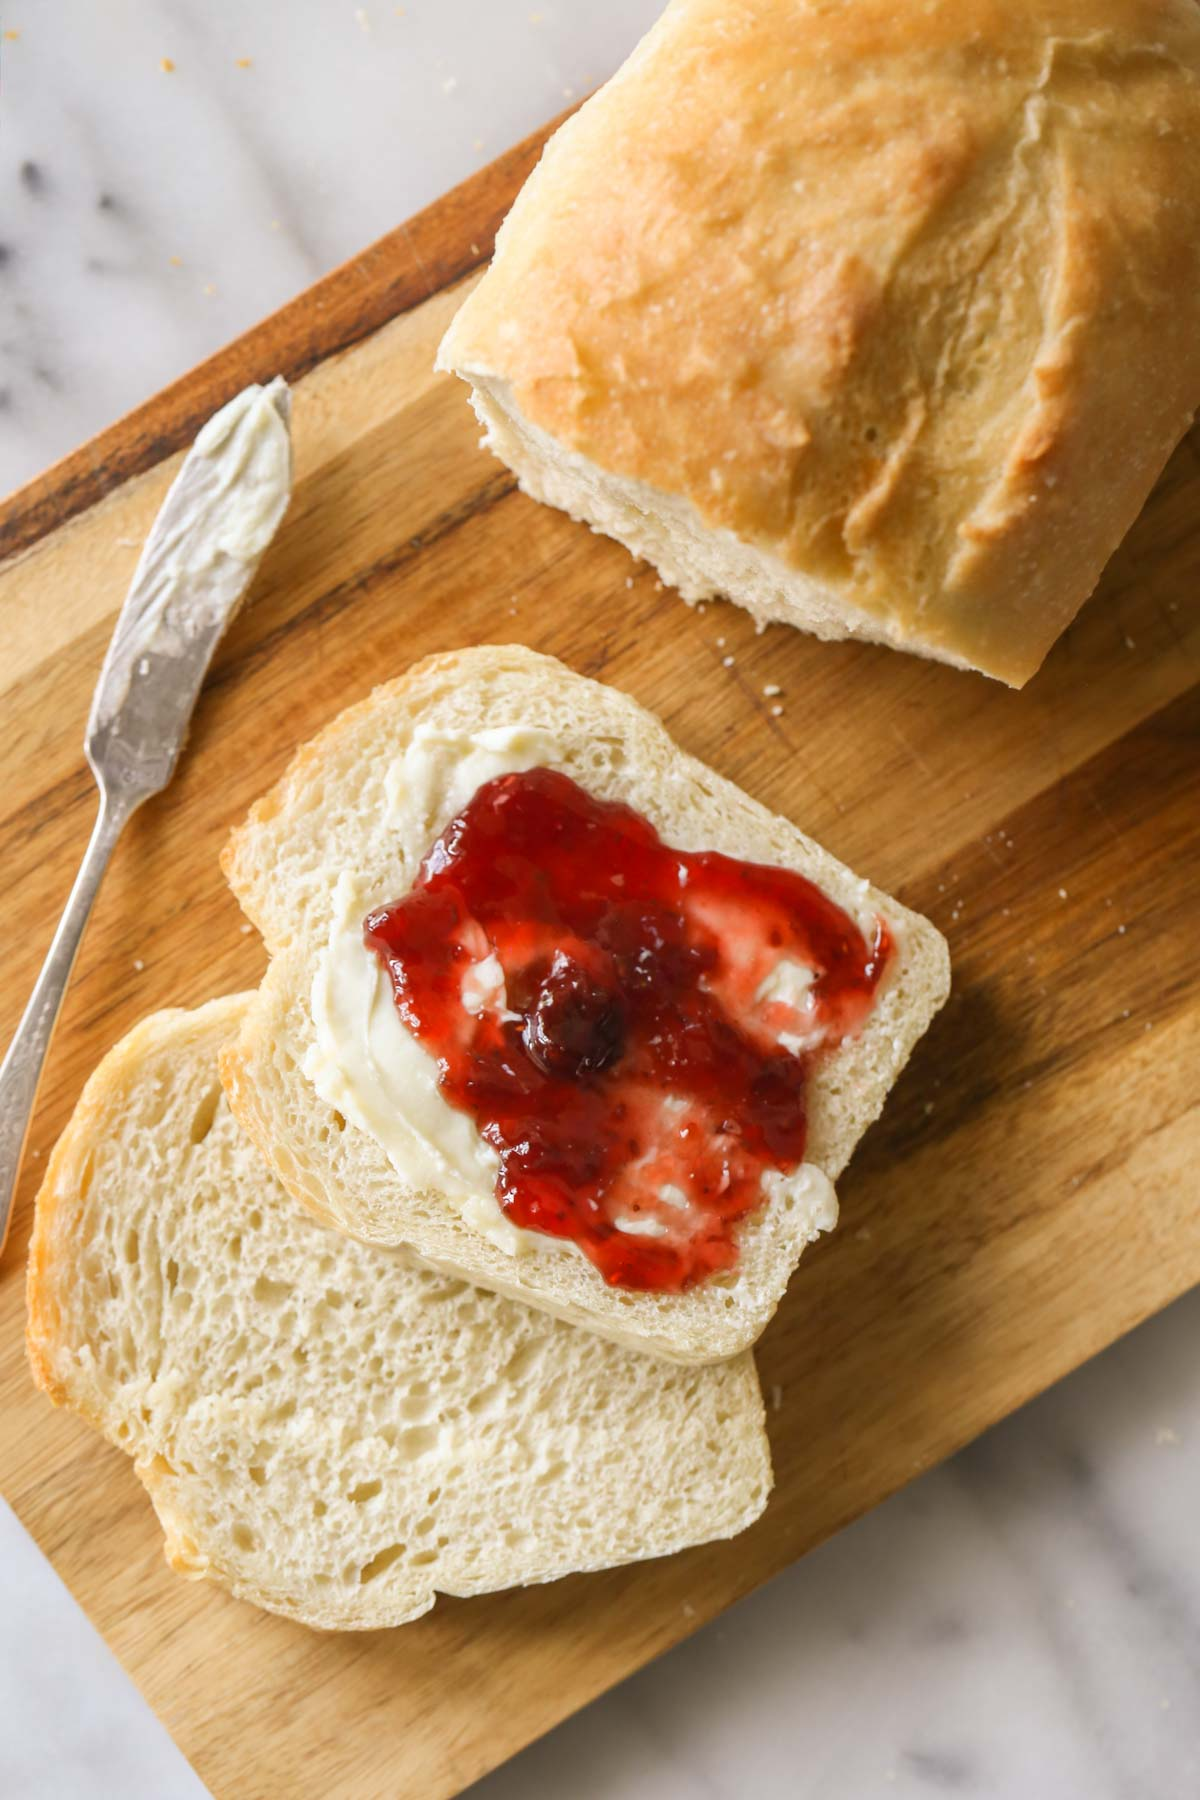 Overhead shot of a Sourdough Sandwich Loaf sliced on a cutting board with a butter knife next to the bread, and one of the slices of bread has butter and jelly on it.